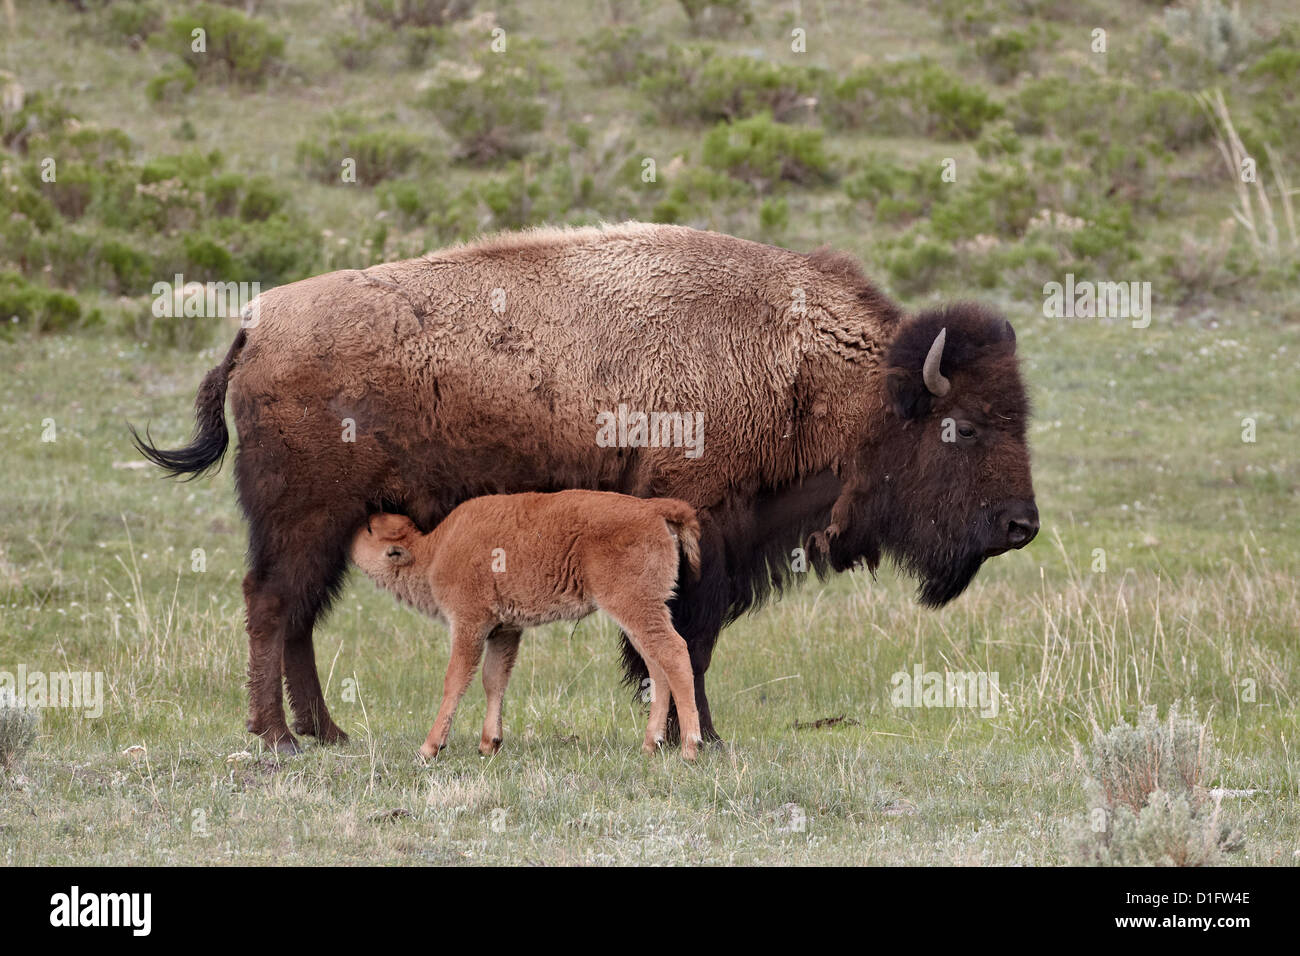 Bison (Bison bison) cow nursing her calf, Yellowstone National Park, Wyoming, United States of America, North America - Stock Image